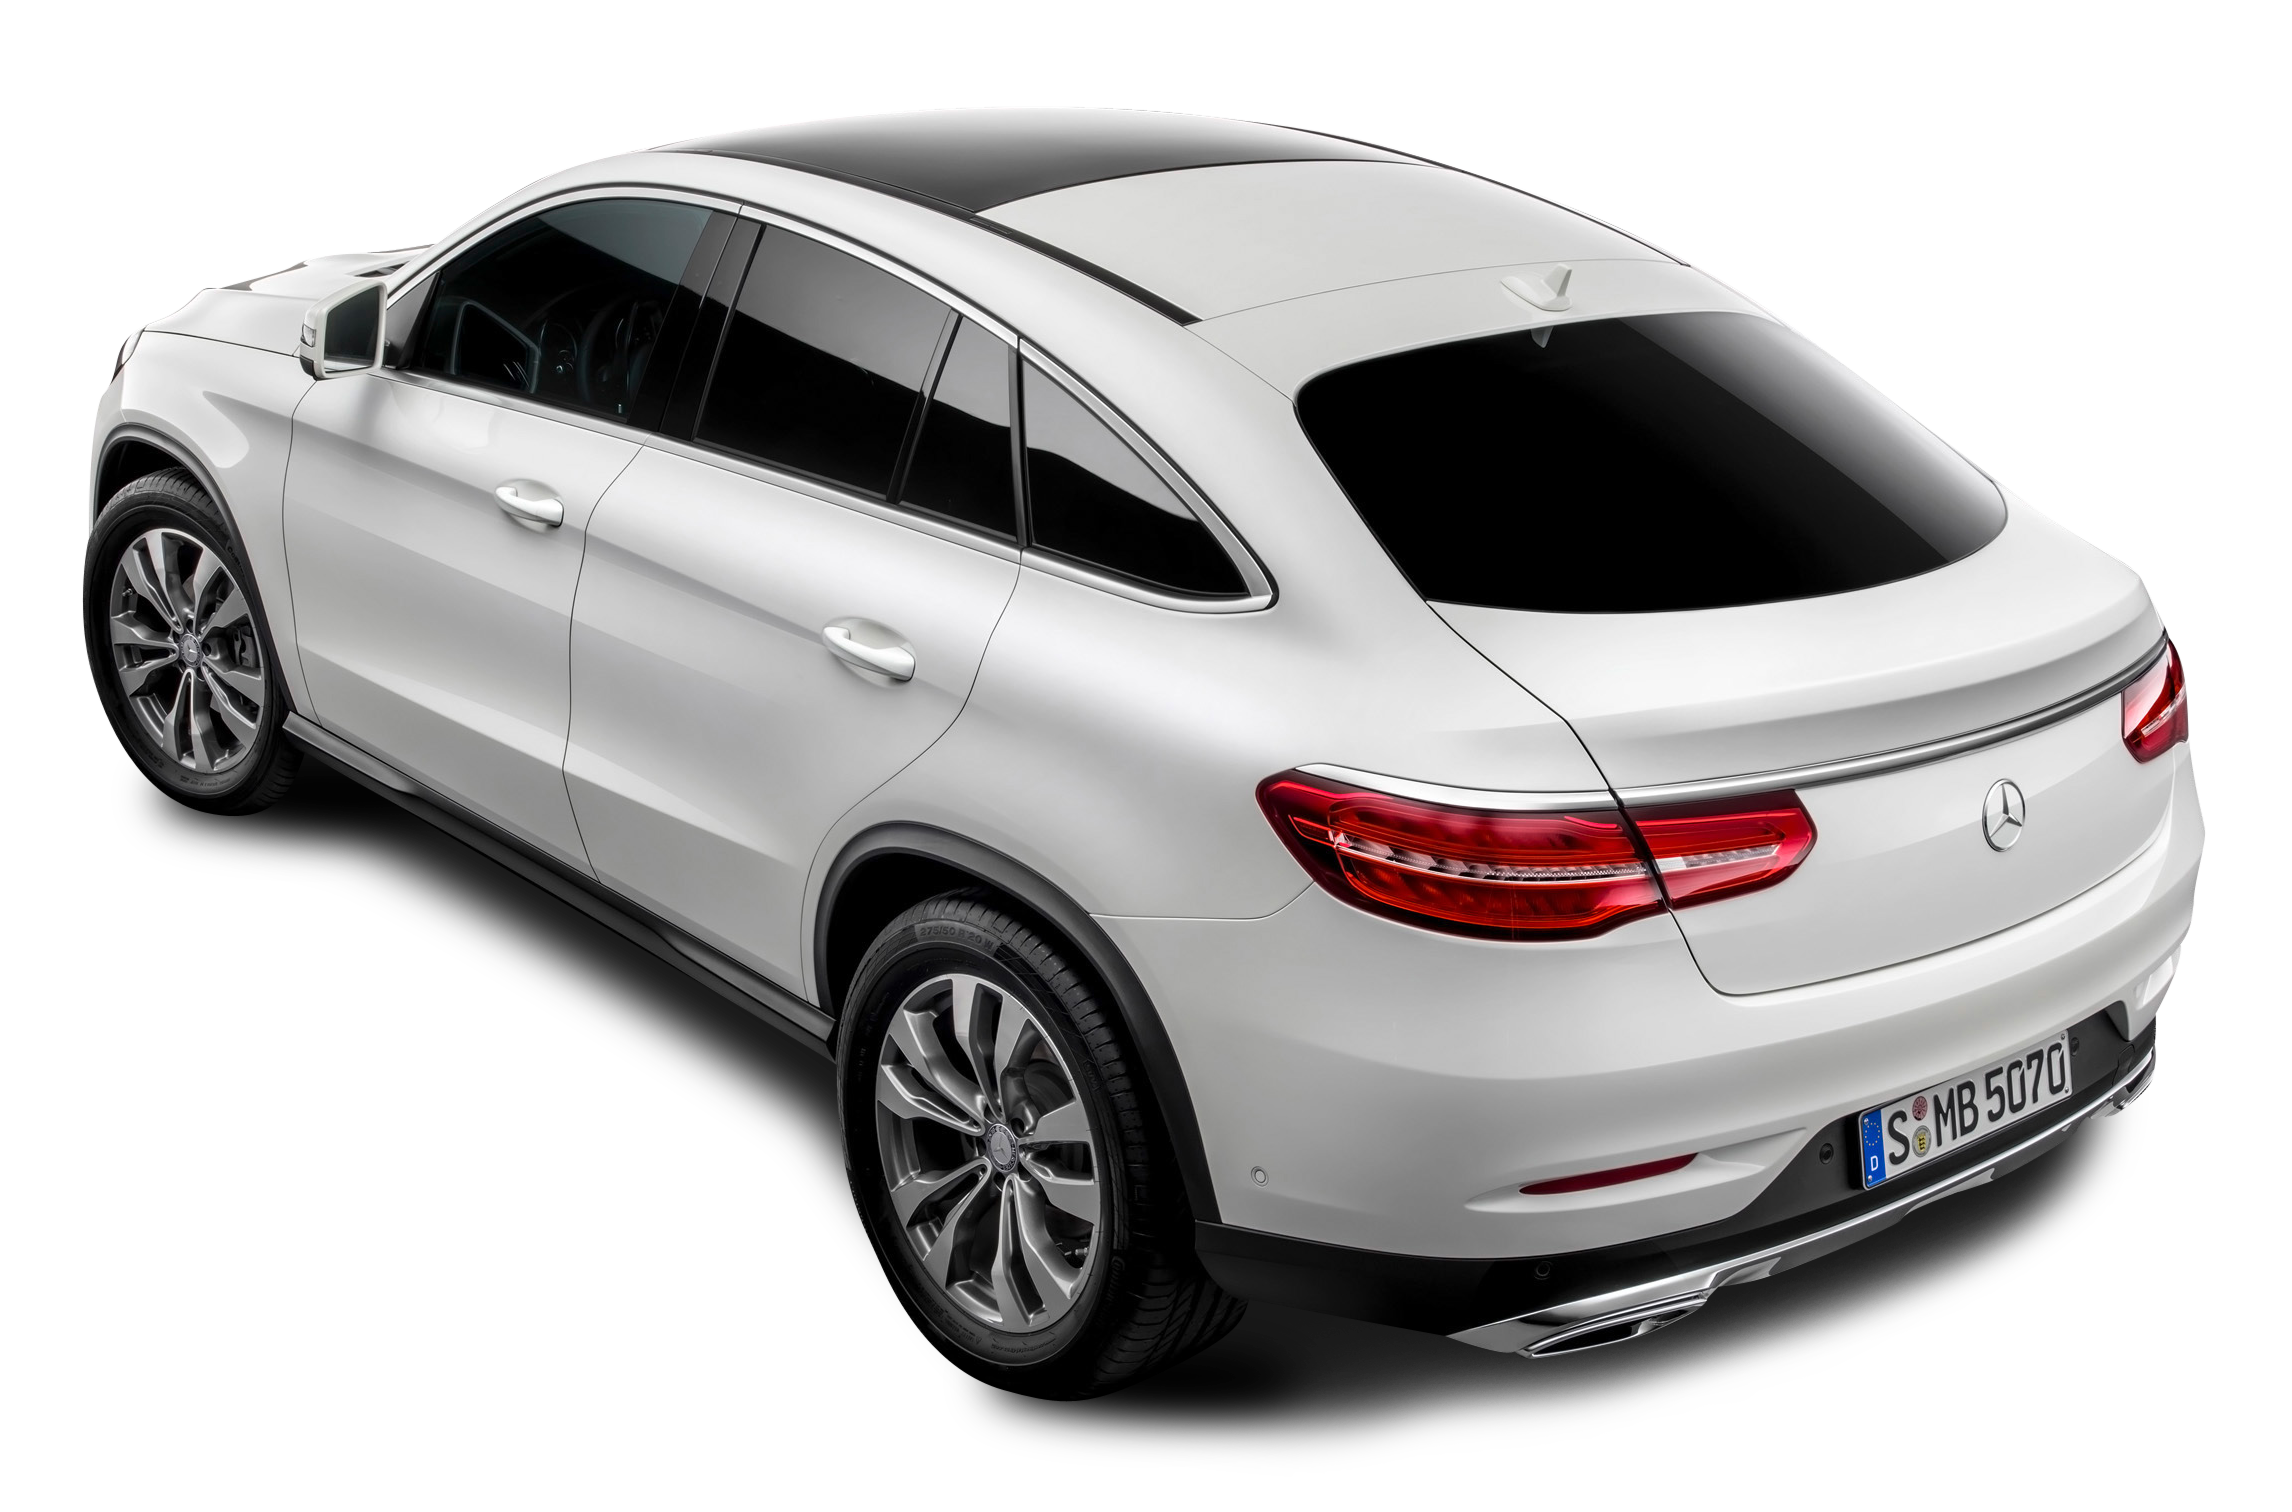 Mercedes Benz Back View White Car PNG Image.